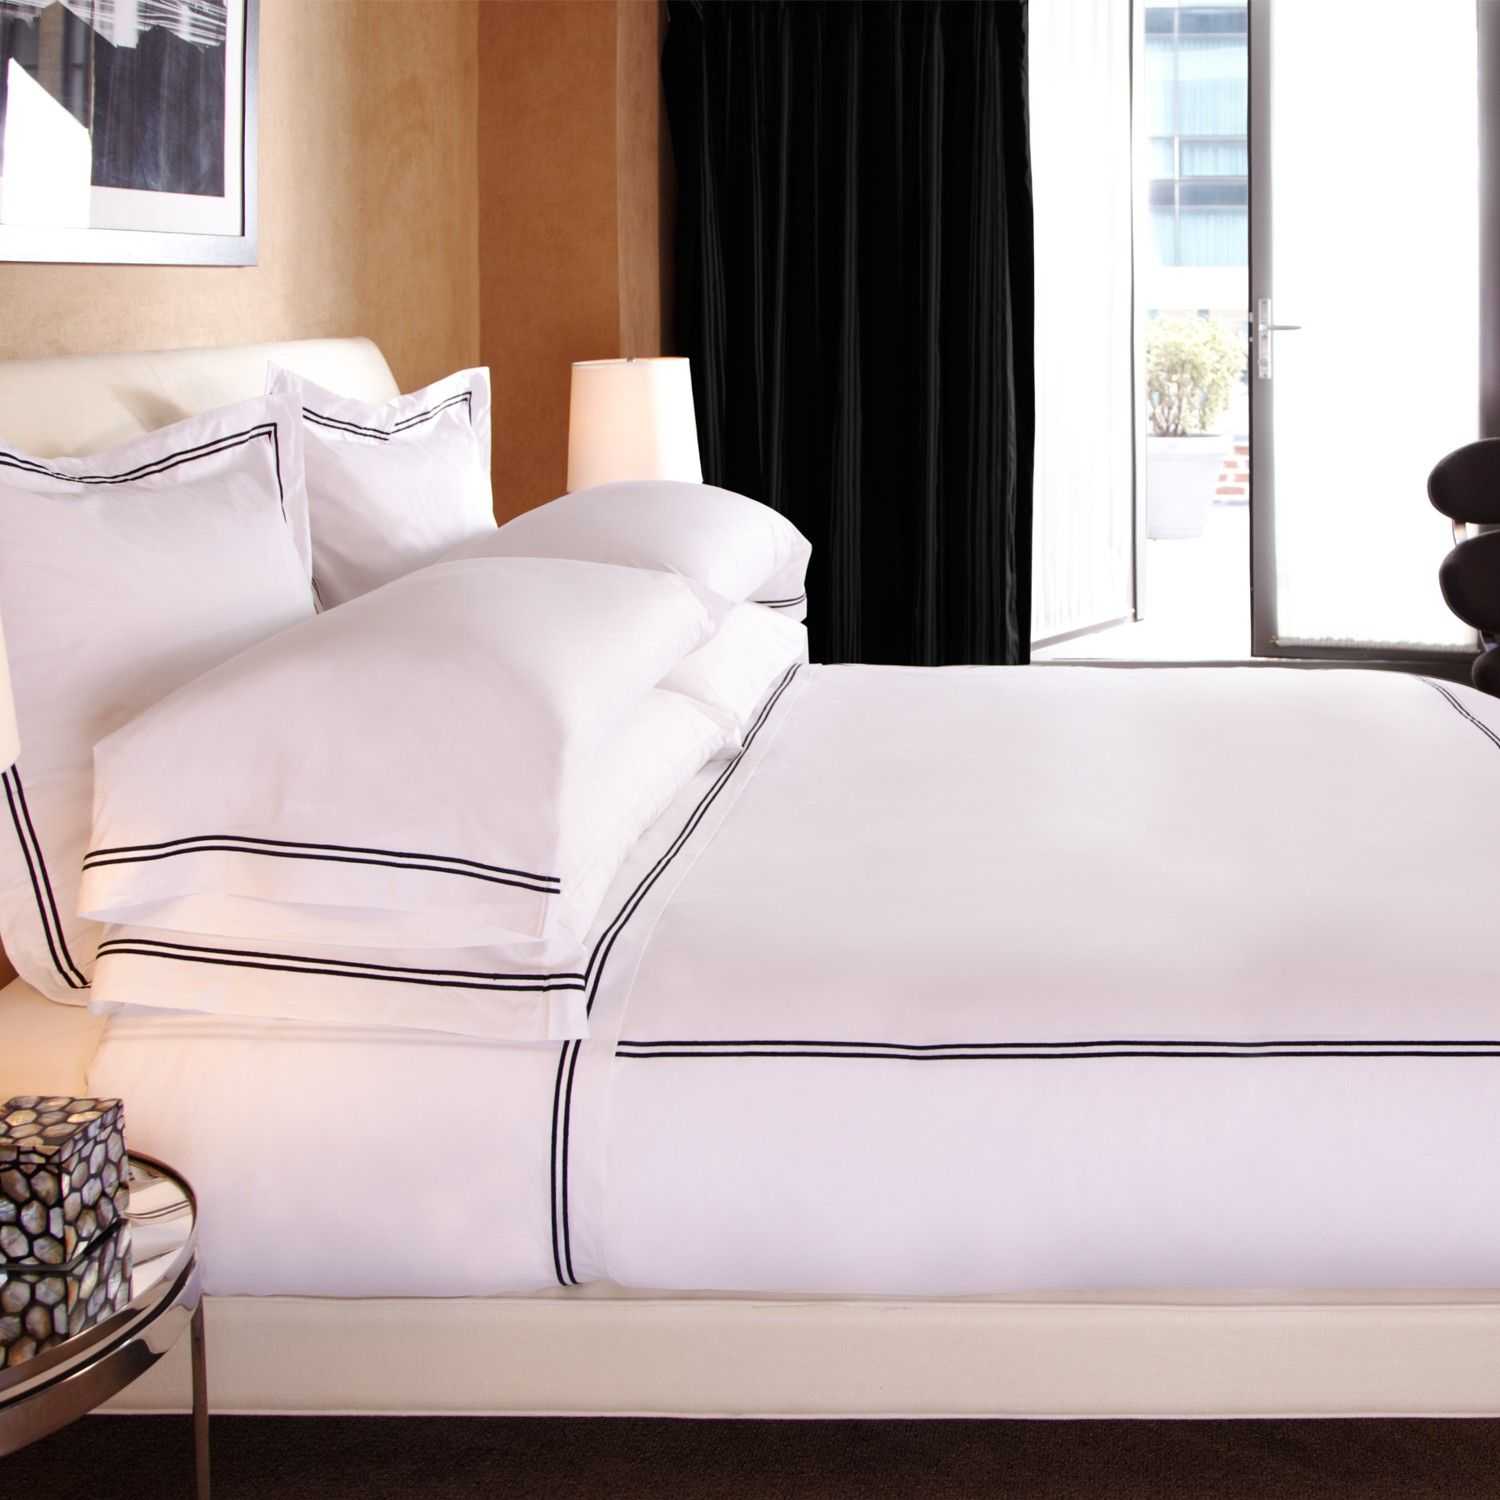 Frette Hotel Classic Collection The Best Sheets Pure White 100 Egyptian Cotton Finished With A Distinctive Tw Bed Linens Luxury Frette Bedding Hotel Bed